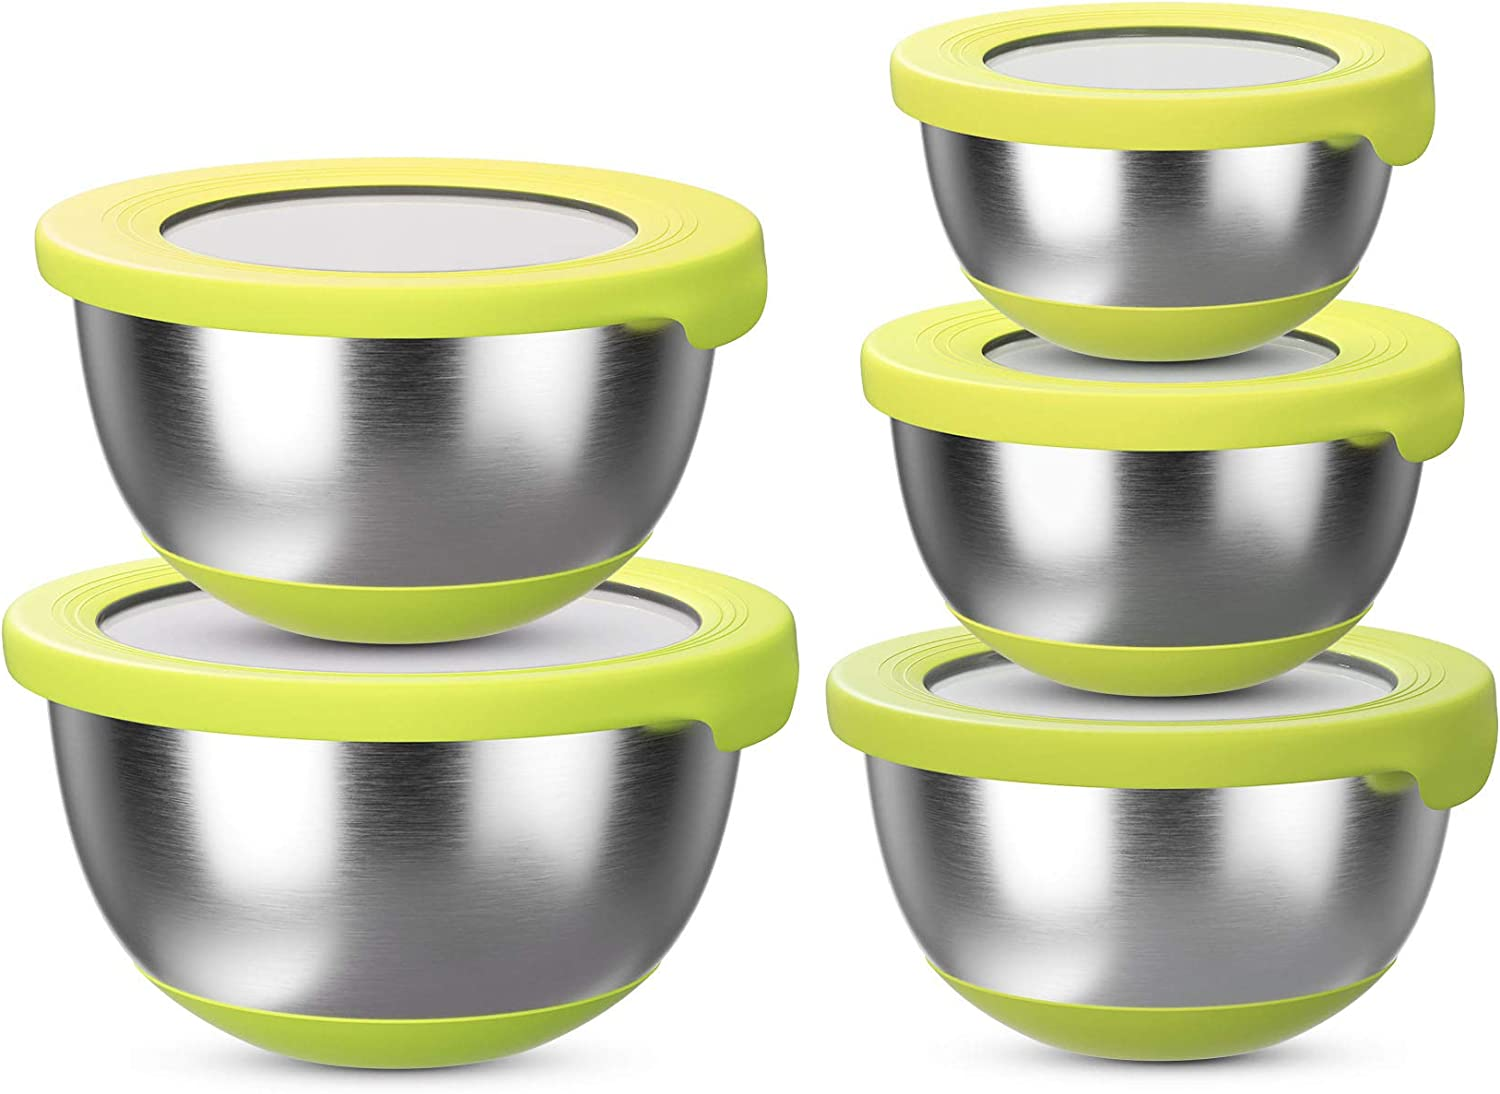 Stainless Steel Mixing Bowls with Lids (Set of 5) – Kitchen Nesting Bowl for Serving, Salad, Marinating, Dough, Baking & Food Storage – Colorful Nonslip Bottoms – Stackable & Space Saving, Yellow…